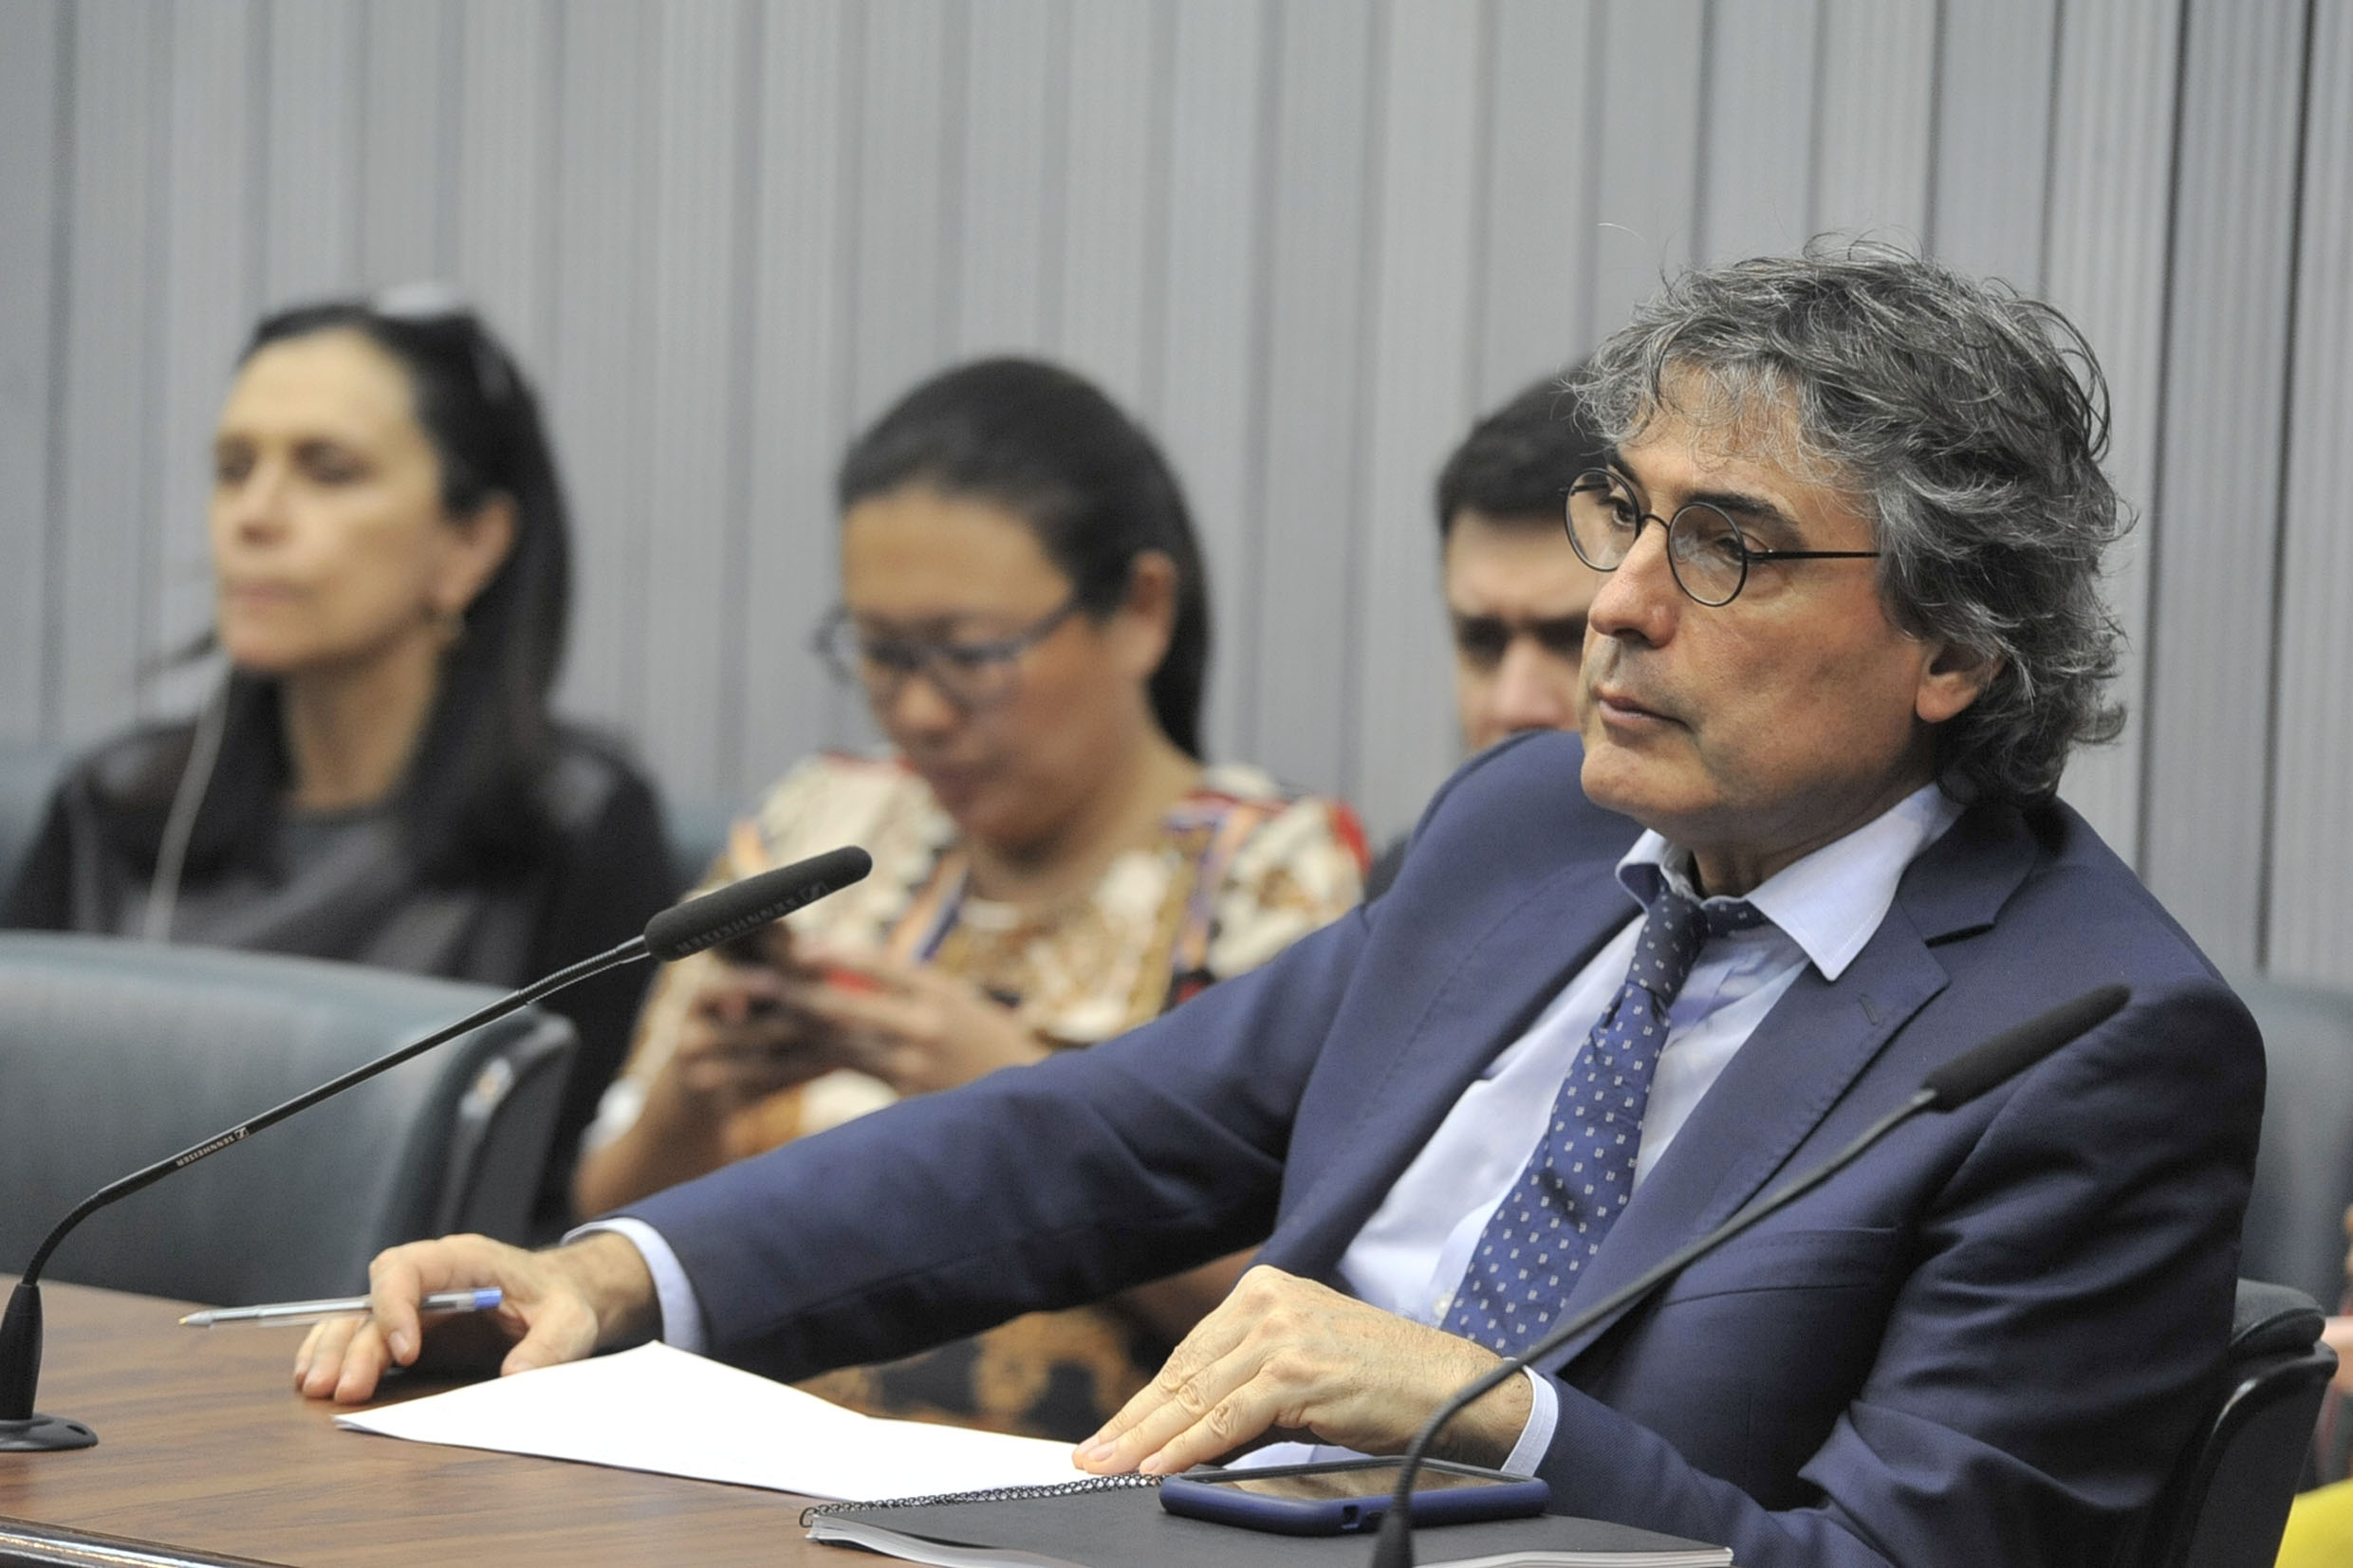 Carlos Giannazi<a style='float:right' href='https://www3.al.sp.gov.br/repositorio/noticia/N-06-2019/fg235664.jpg' target=_blank><img src='/_img/material-file-download-white.png' width='14px' alt='Clique para baixar a imagem'></a>